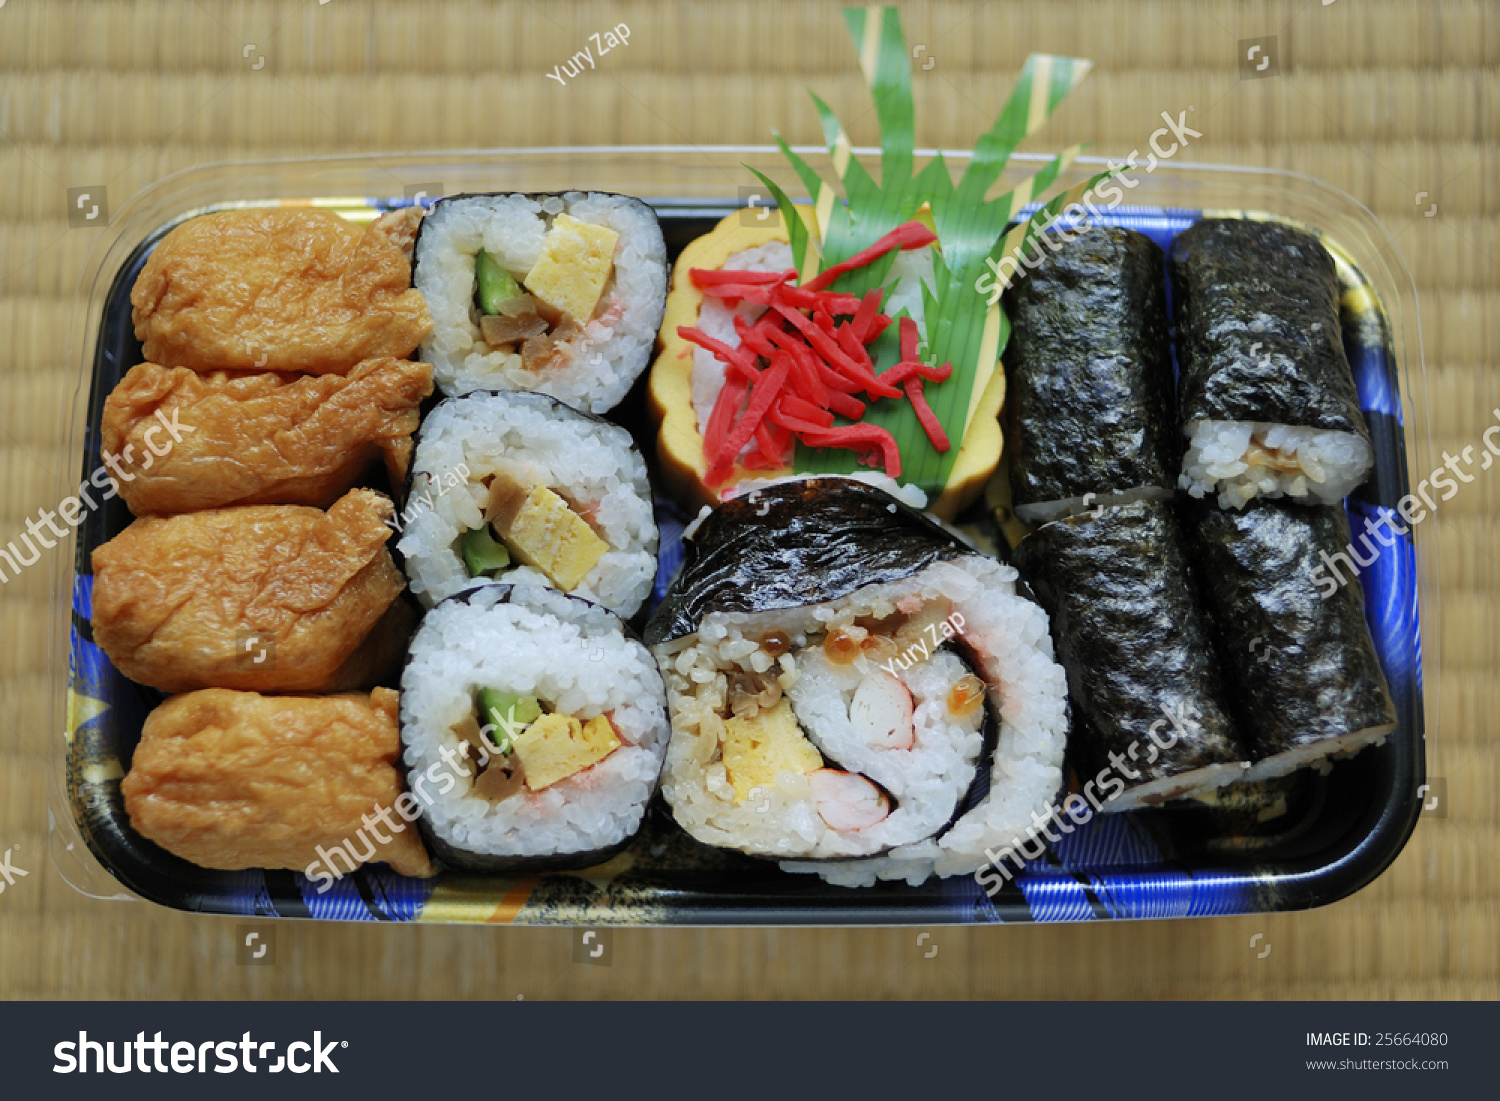 traditional japanese lunch box called obento stock photo 25664080 shutterstock. Black Bedroom Furniture Sets. Home Design Ideas